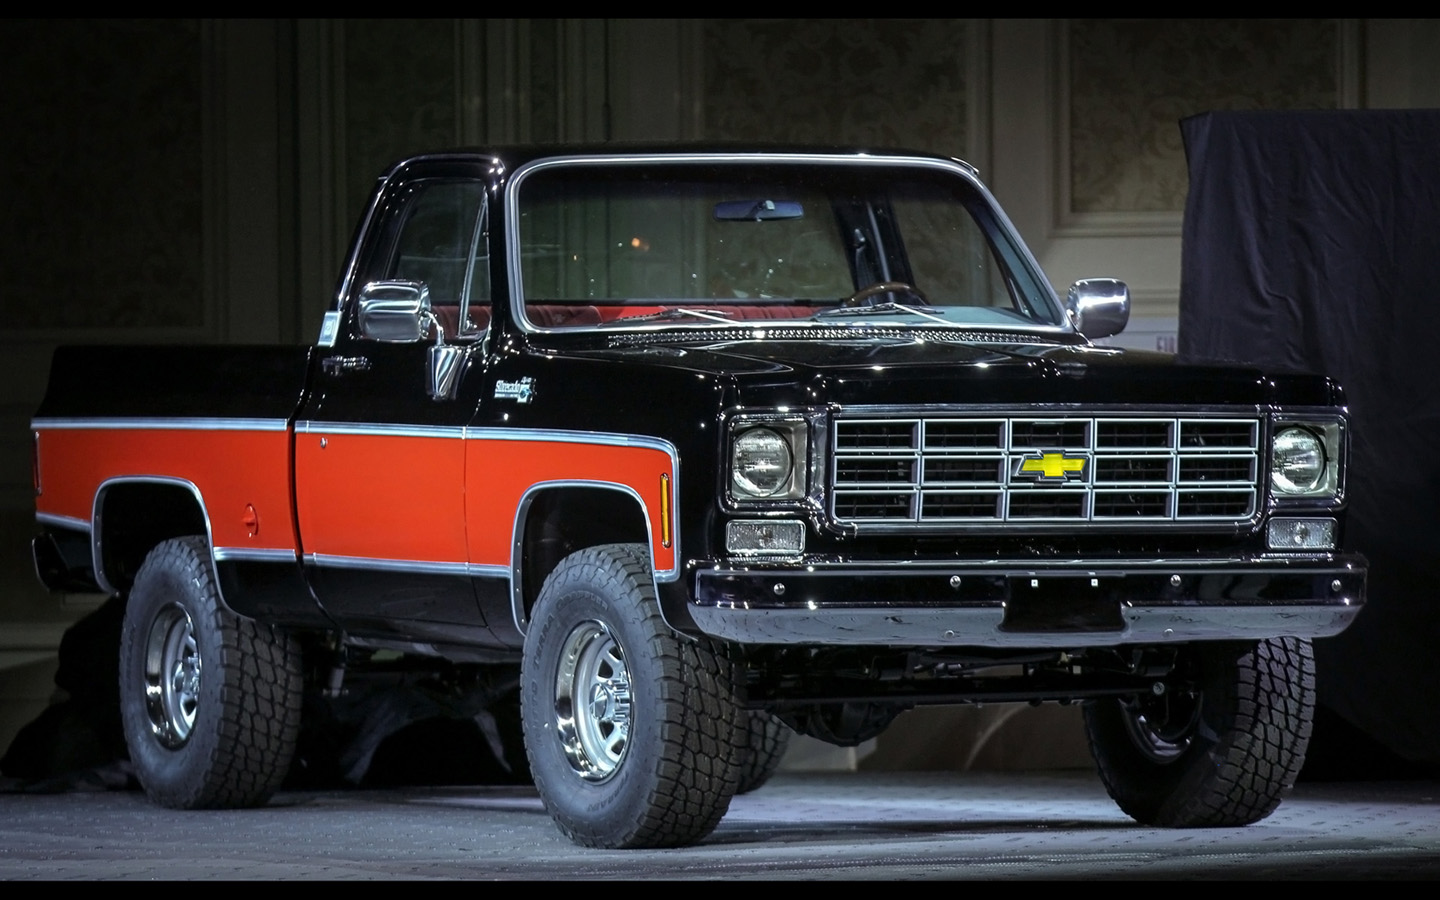 Truck Concepts at SEMA   1978 4x4 Pickup   2   1440x900   Wallpaper 1440x900